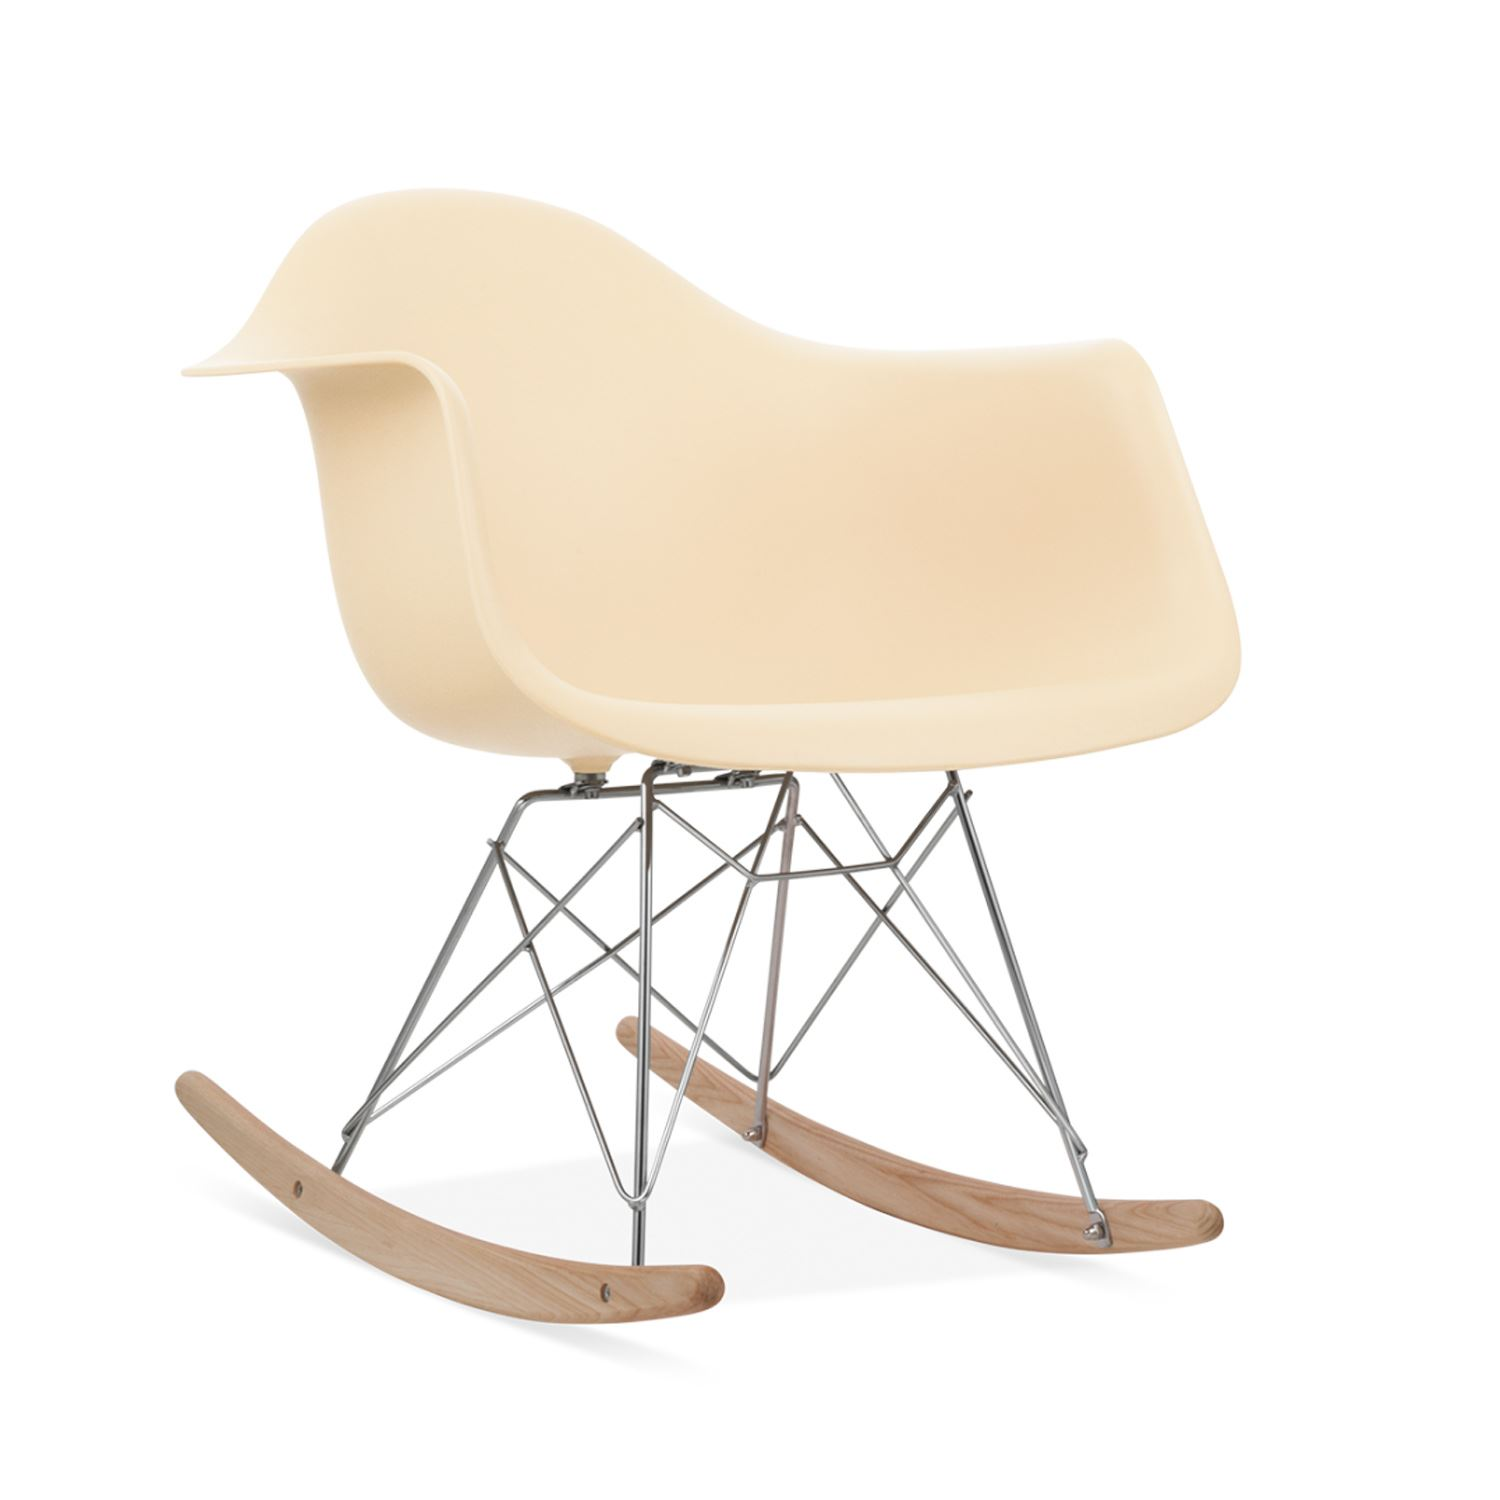 Eames Rocking Chair RAR Rocker Armchair Retro Lounge Nursery Baby room Furniture